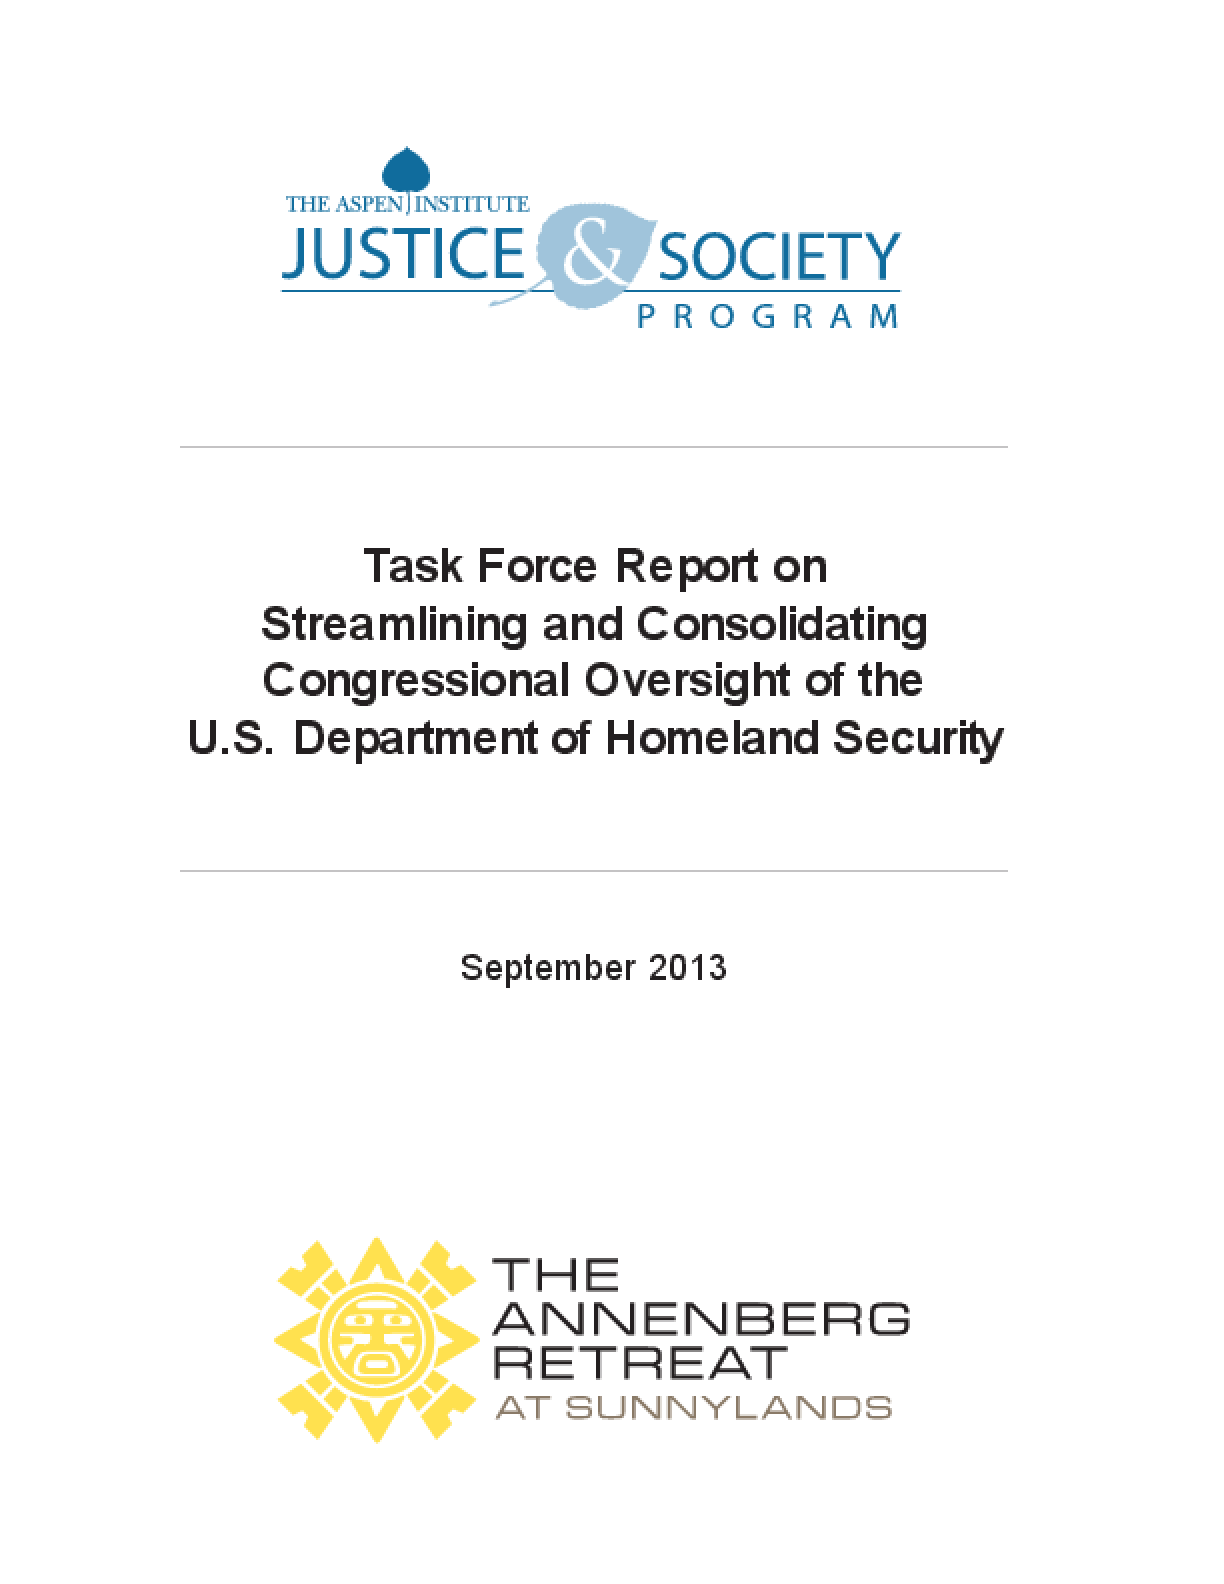 Task Force Report on Streamlining and Consolidating Congressional Oversight of the U.S. Department of Homeland Security